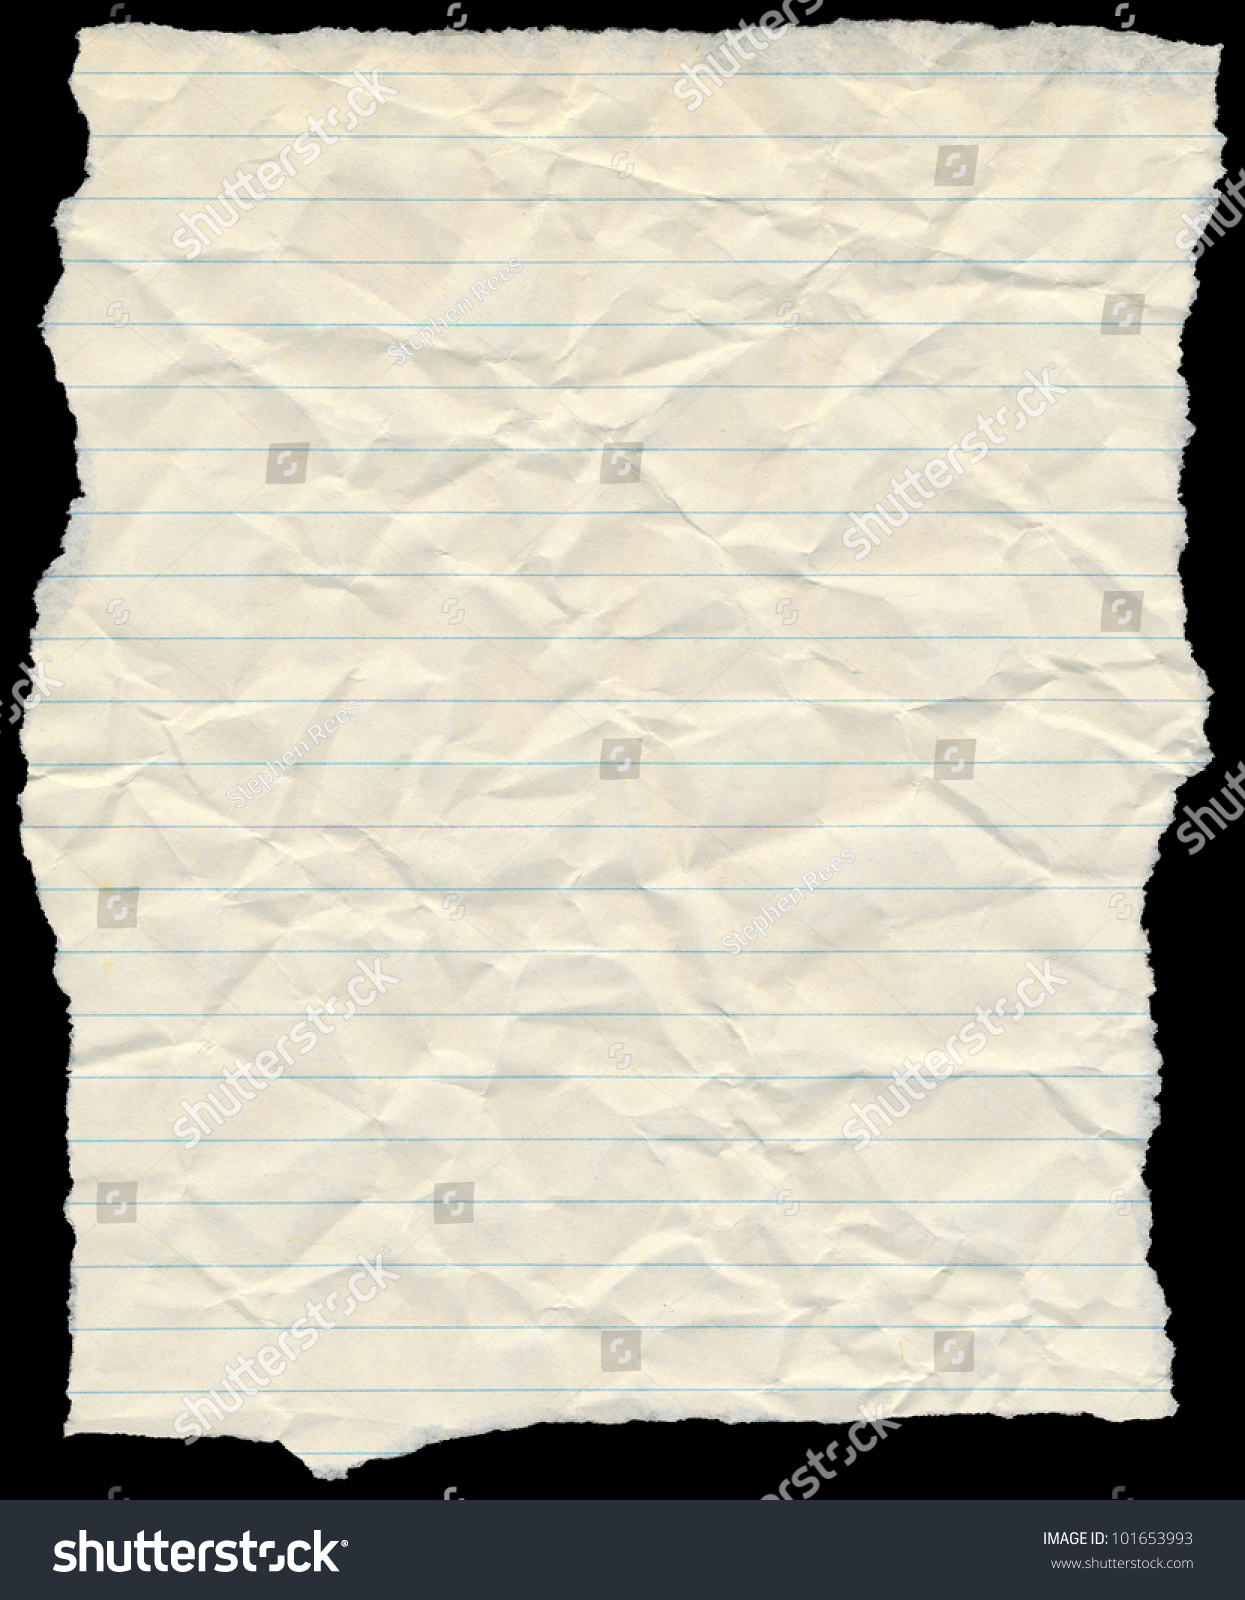 old yellowing crumpled lined paper torn stock photo (edit now